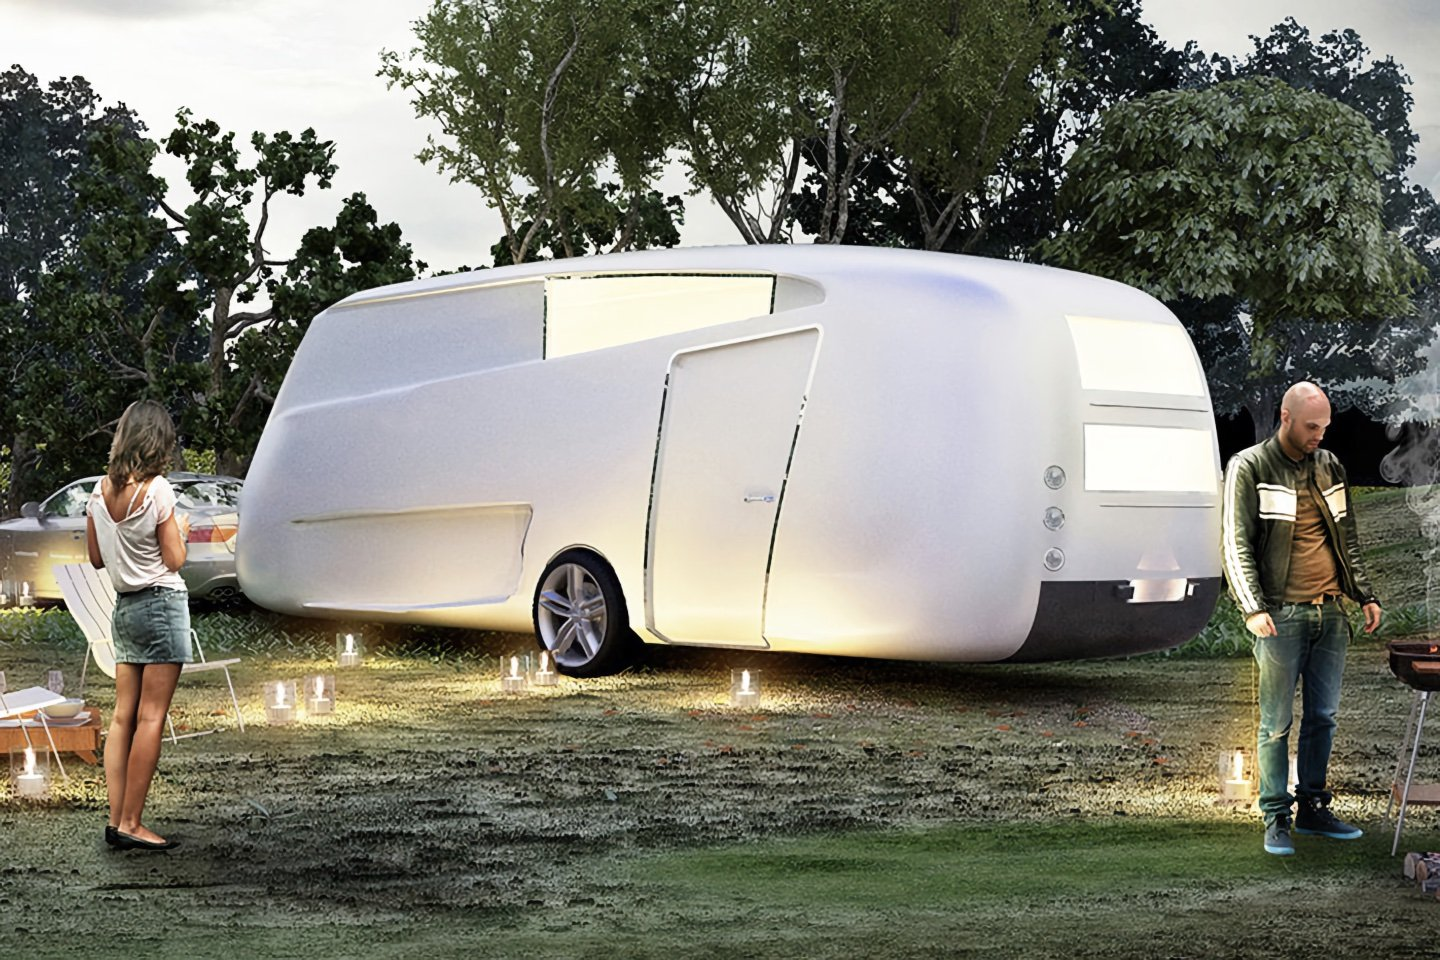 Trailers designed for the modern nomad to meet their outdoor glamping needs!